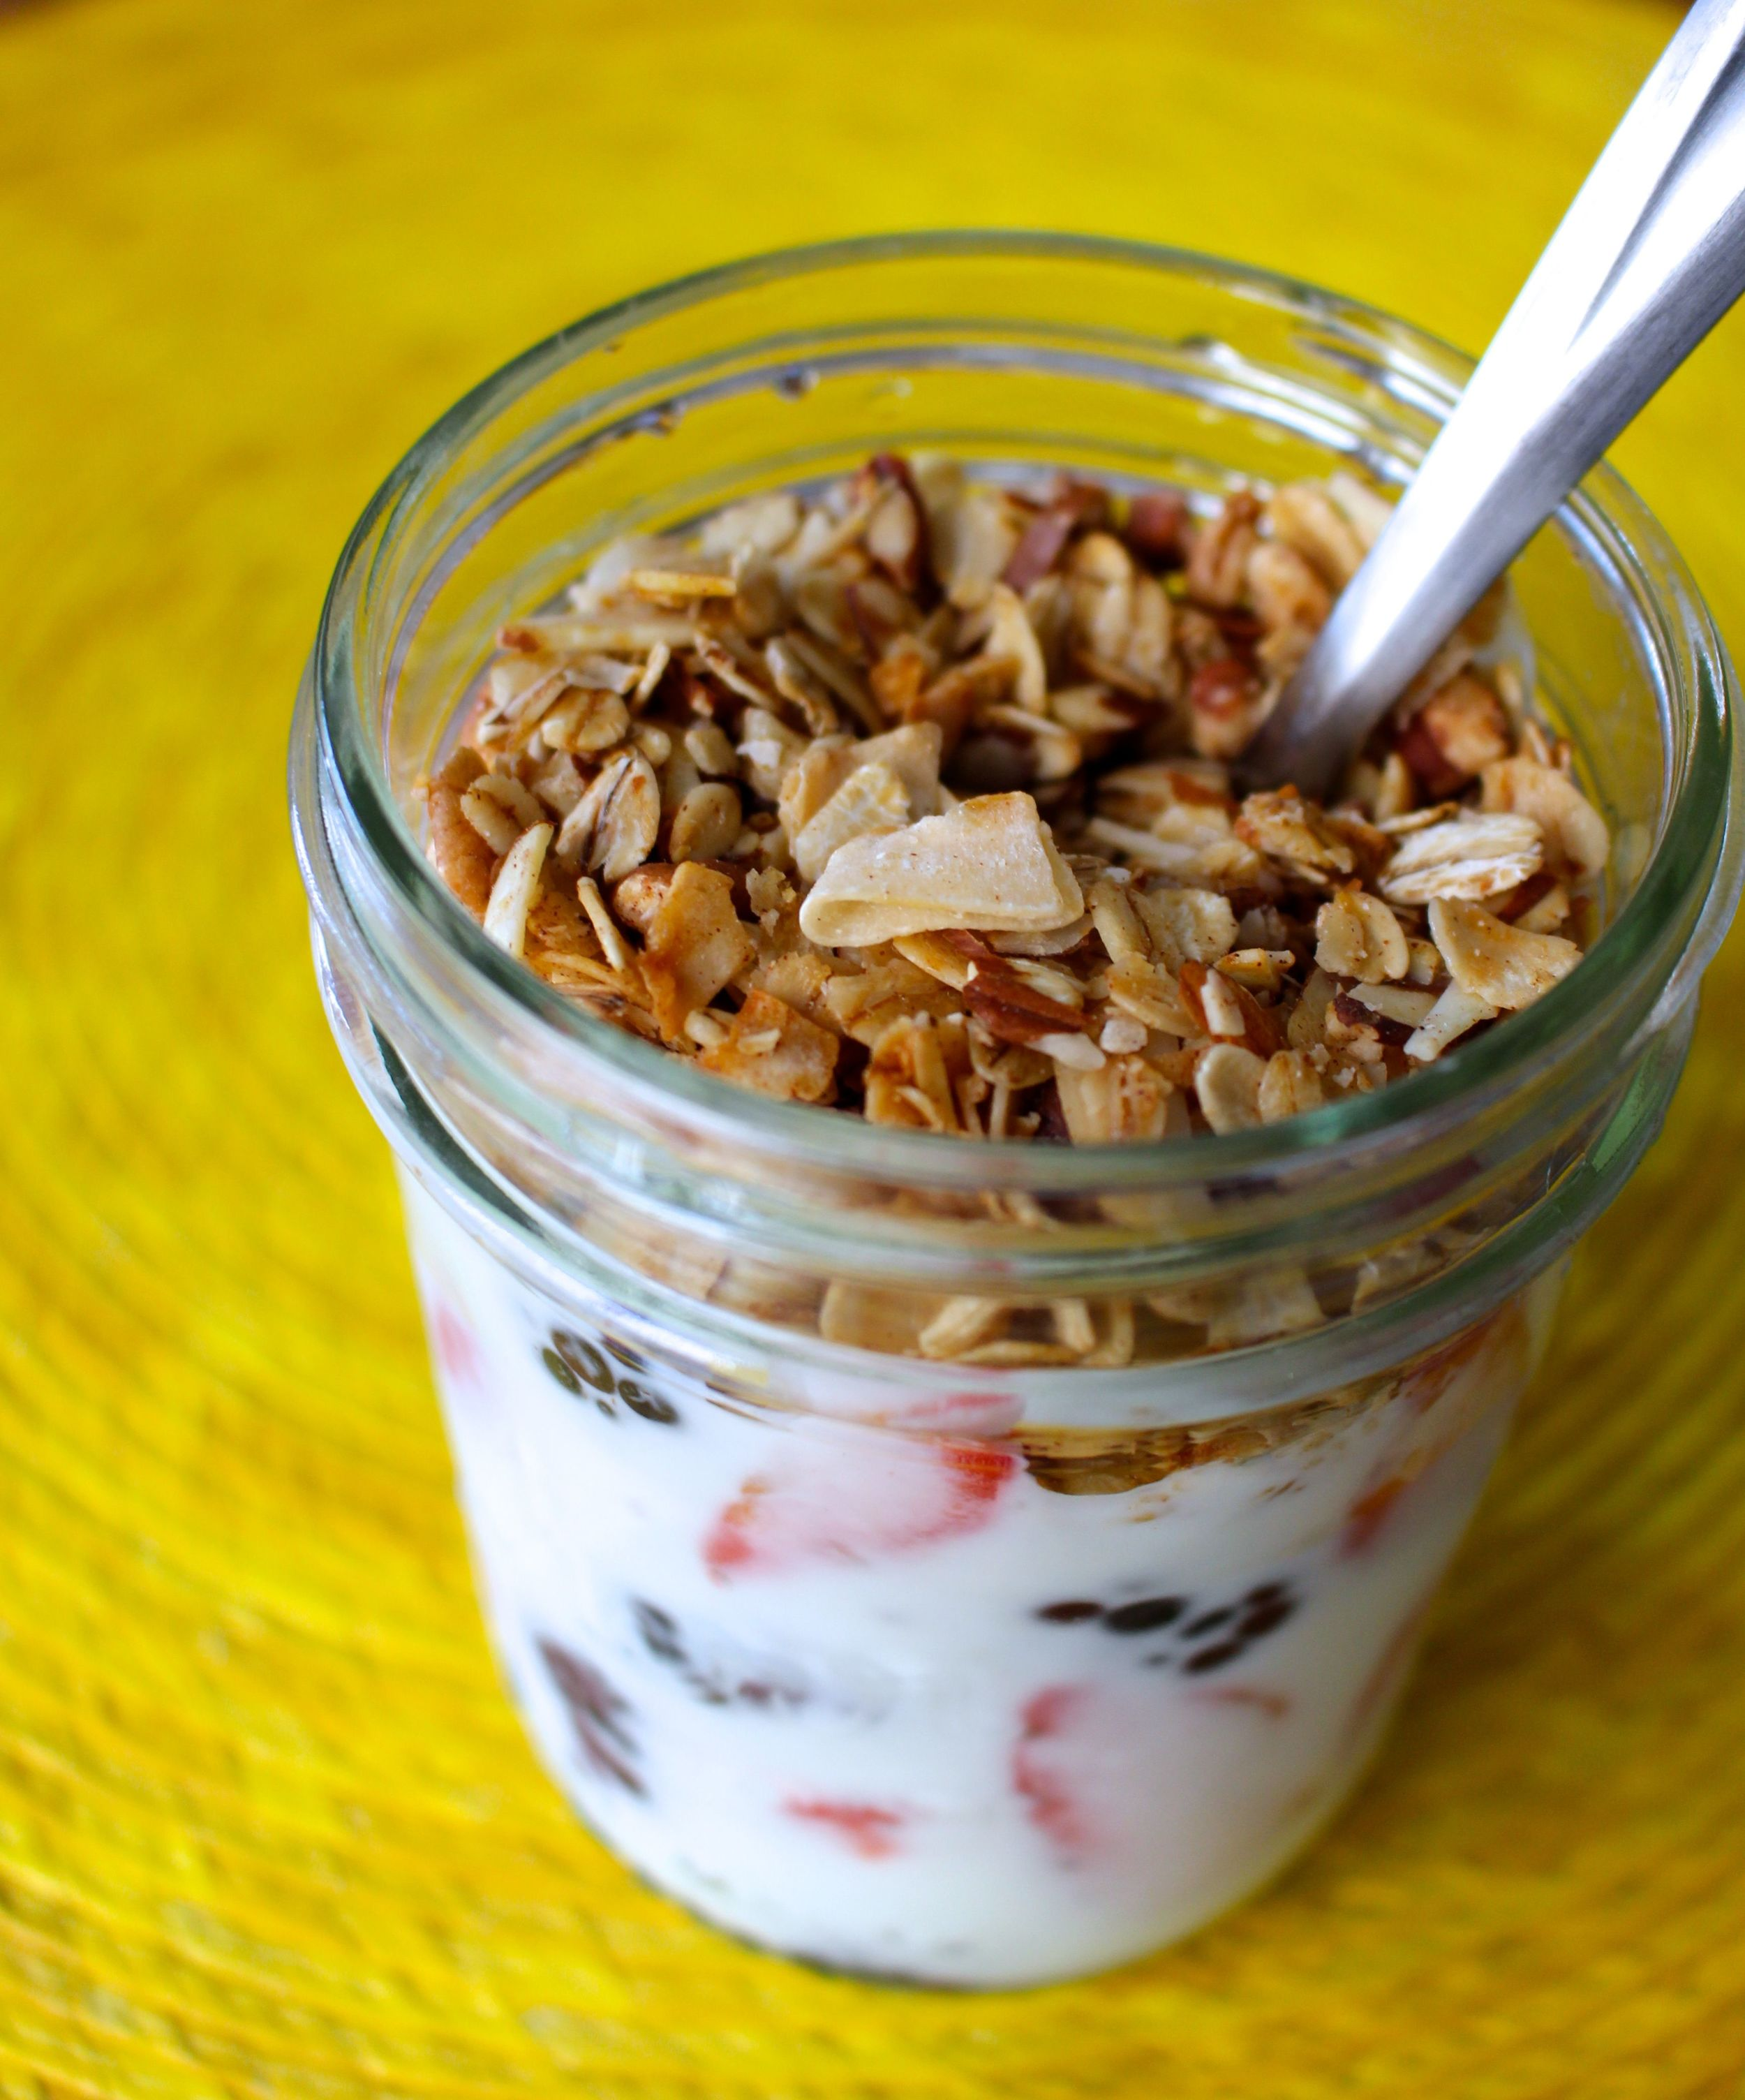 Granola, yogurt and berry breakfast